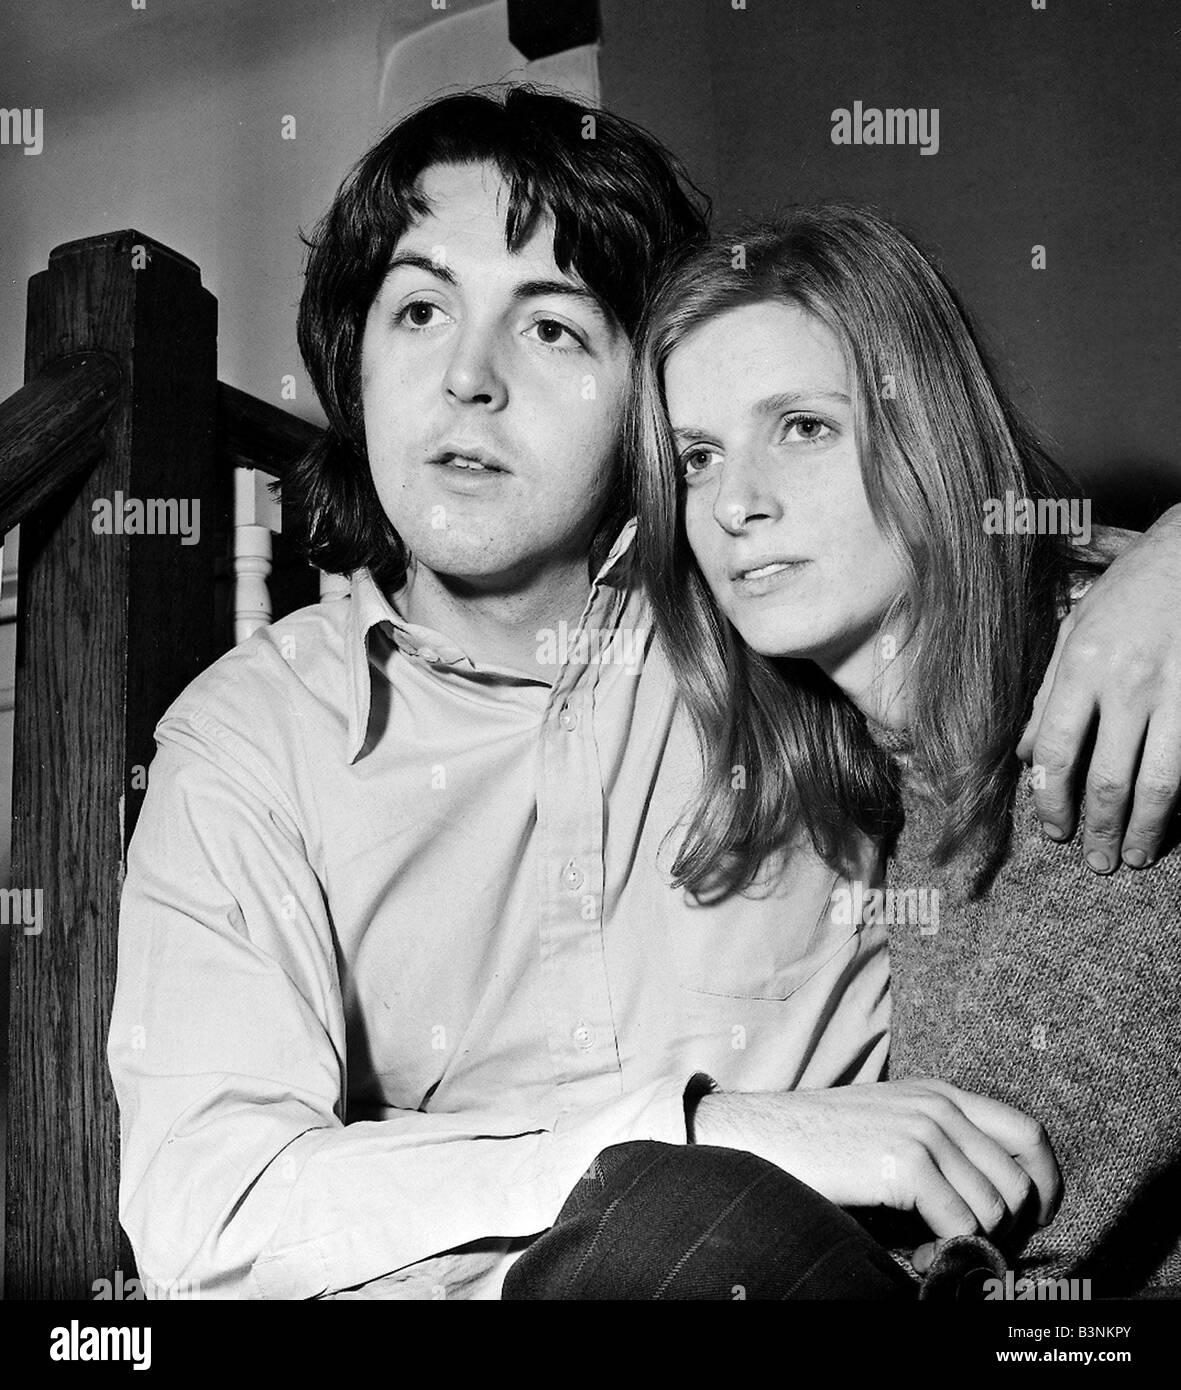 Beatles Files 1969 Paul McCartney With Wife Linda At Home In St John Wood March